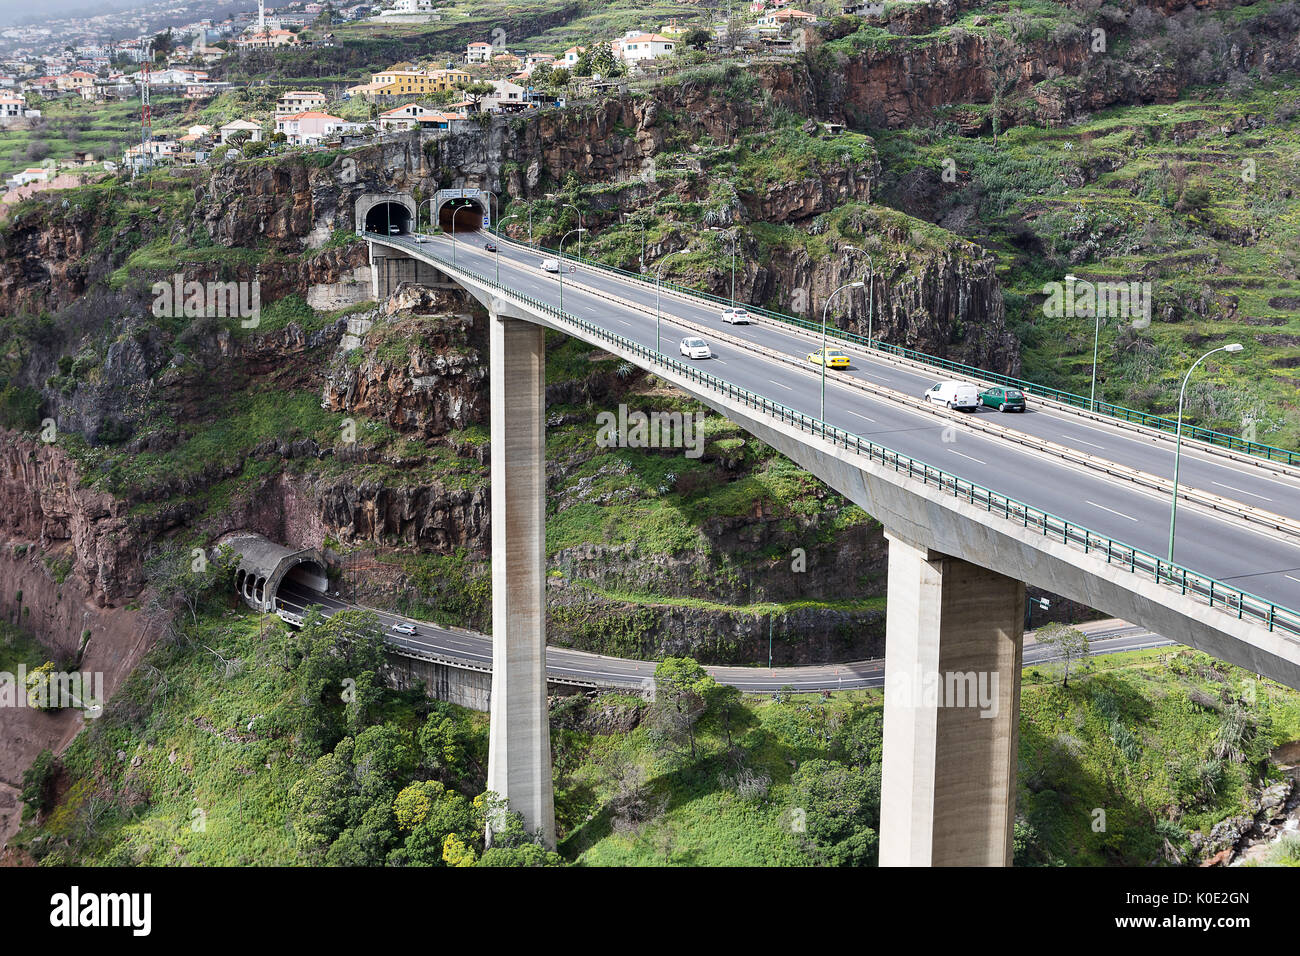 Highway Through Funchal, Madeira, Portugal. - Stock Image